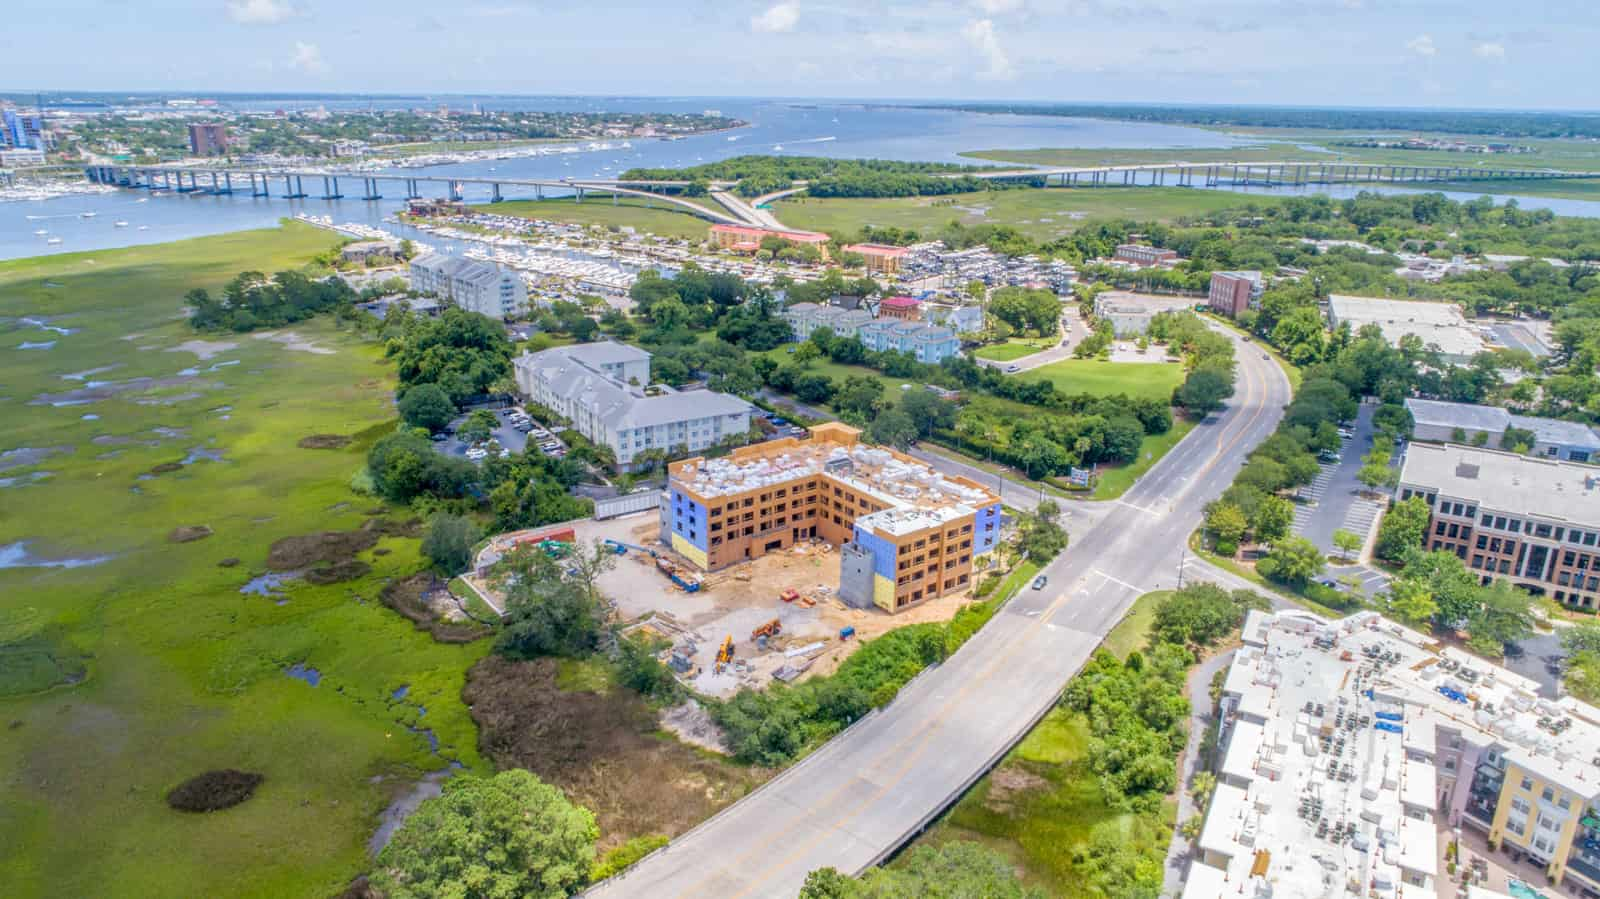 aerial photo of office building being built near coast in South Carolina